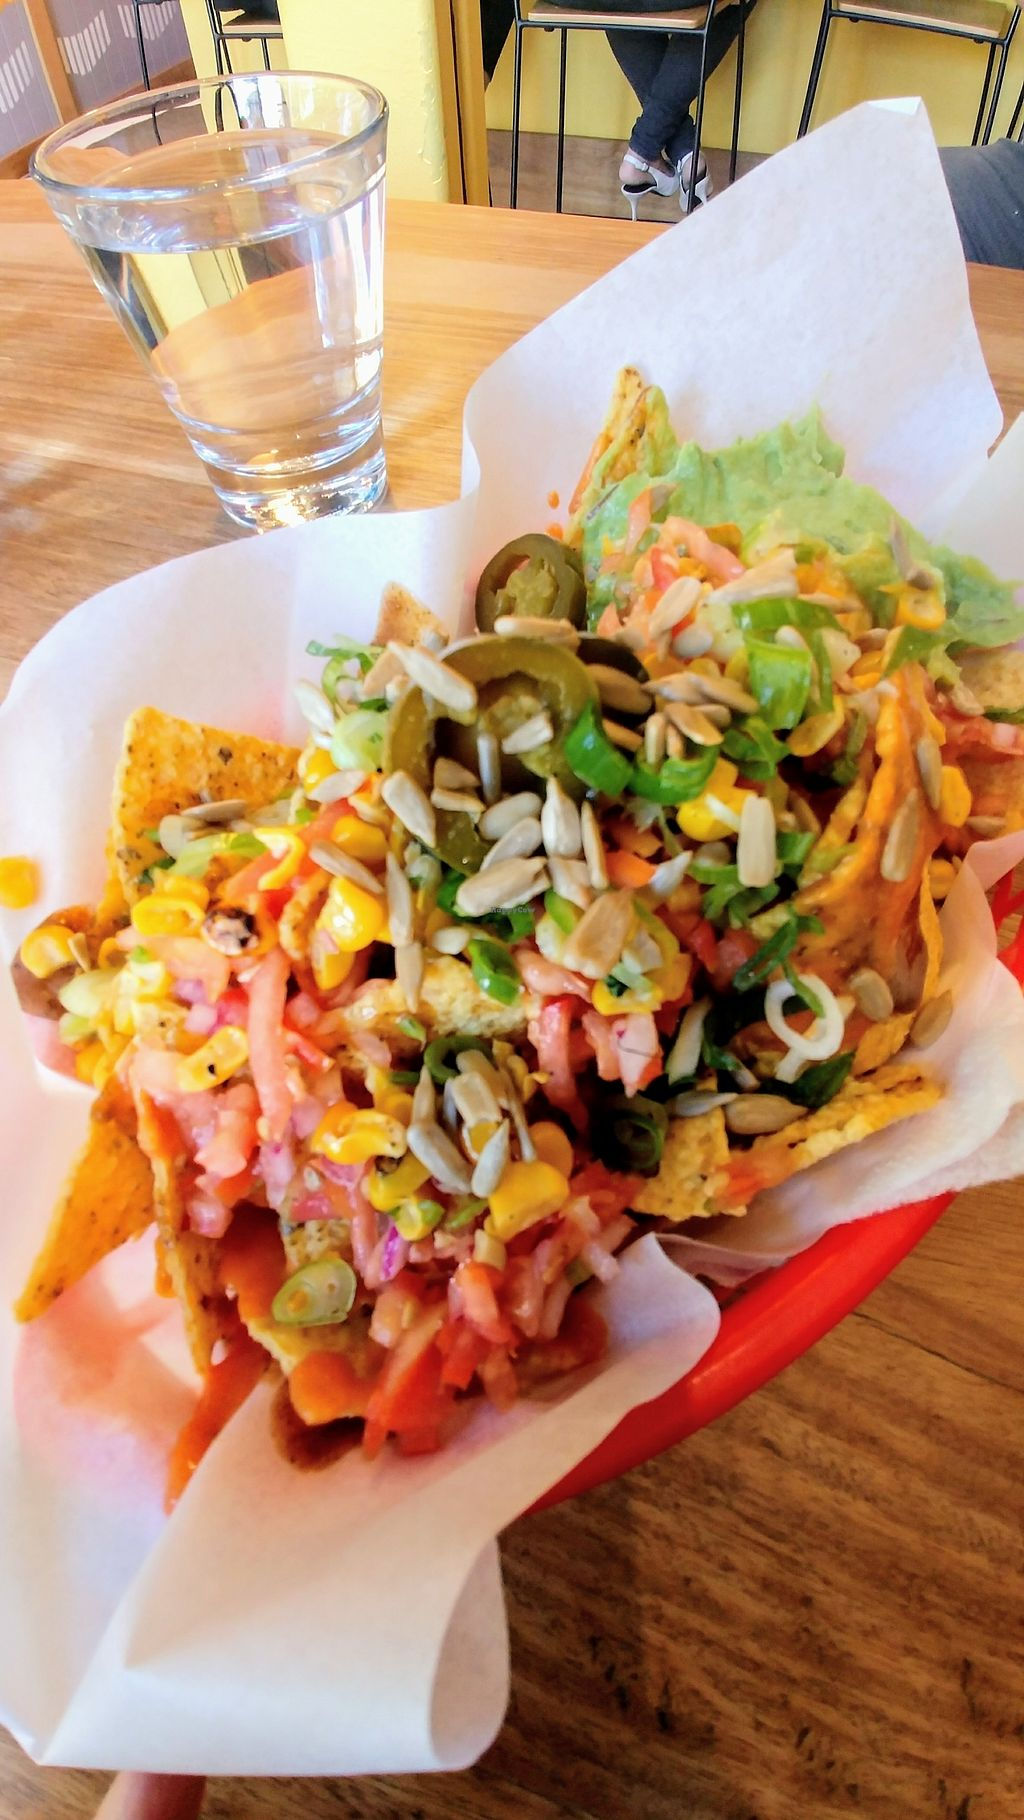 "Photo of Paco's Tacos  by <a href=""/members/profile/karlaess"">karlaess</a> <br/>Nachos <br/> February 2, 2018  - <a href='/contact/abuse/image/107948/354149'>Report</a>"